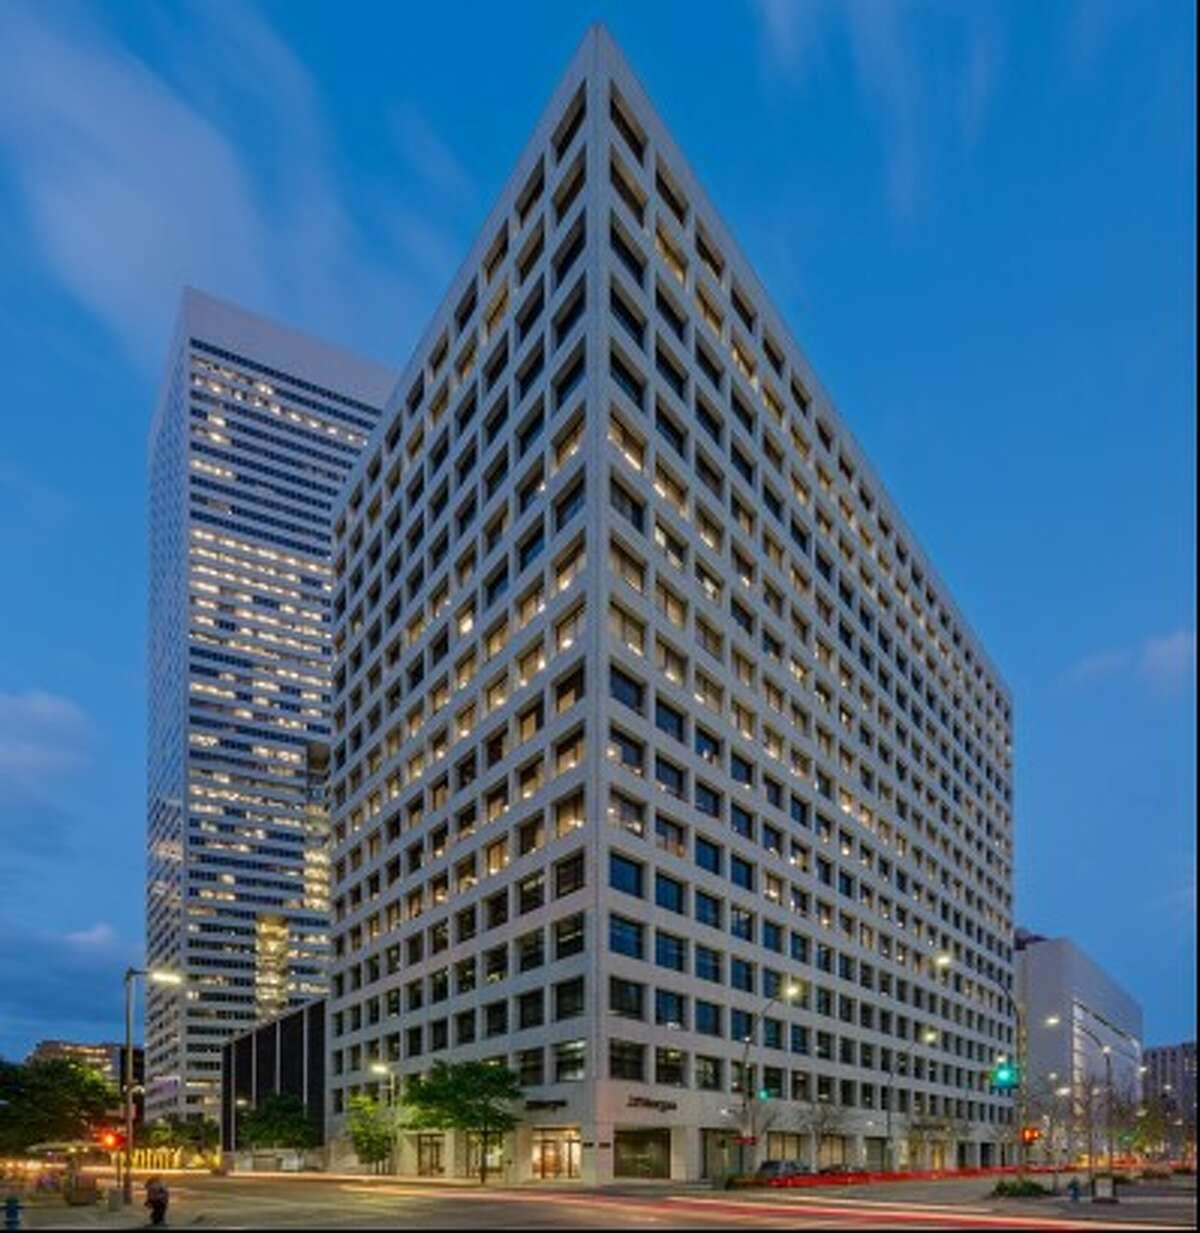 Triten Real Estate Partners and Taconic Capital Advisors purchased 1111 Fannin. JLL Capital Markets represented the seller and procured the buyer.